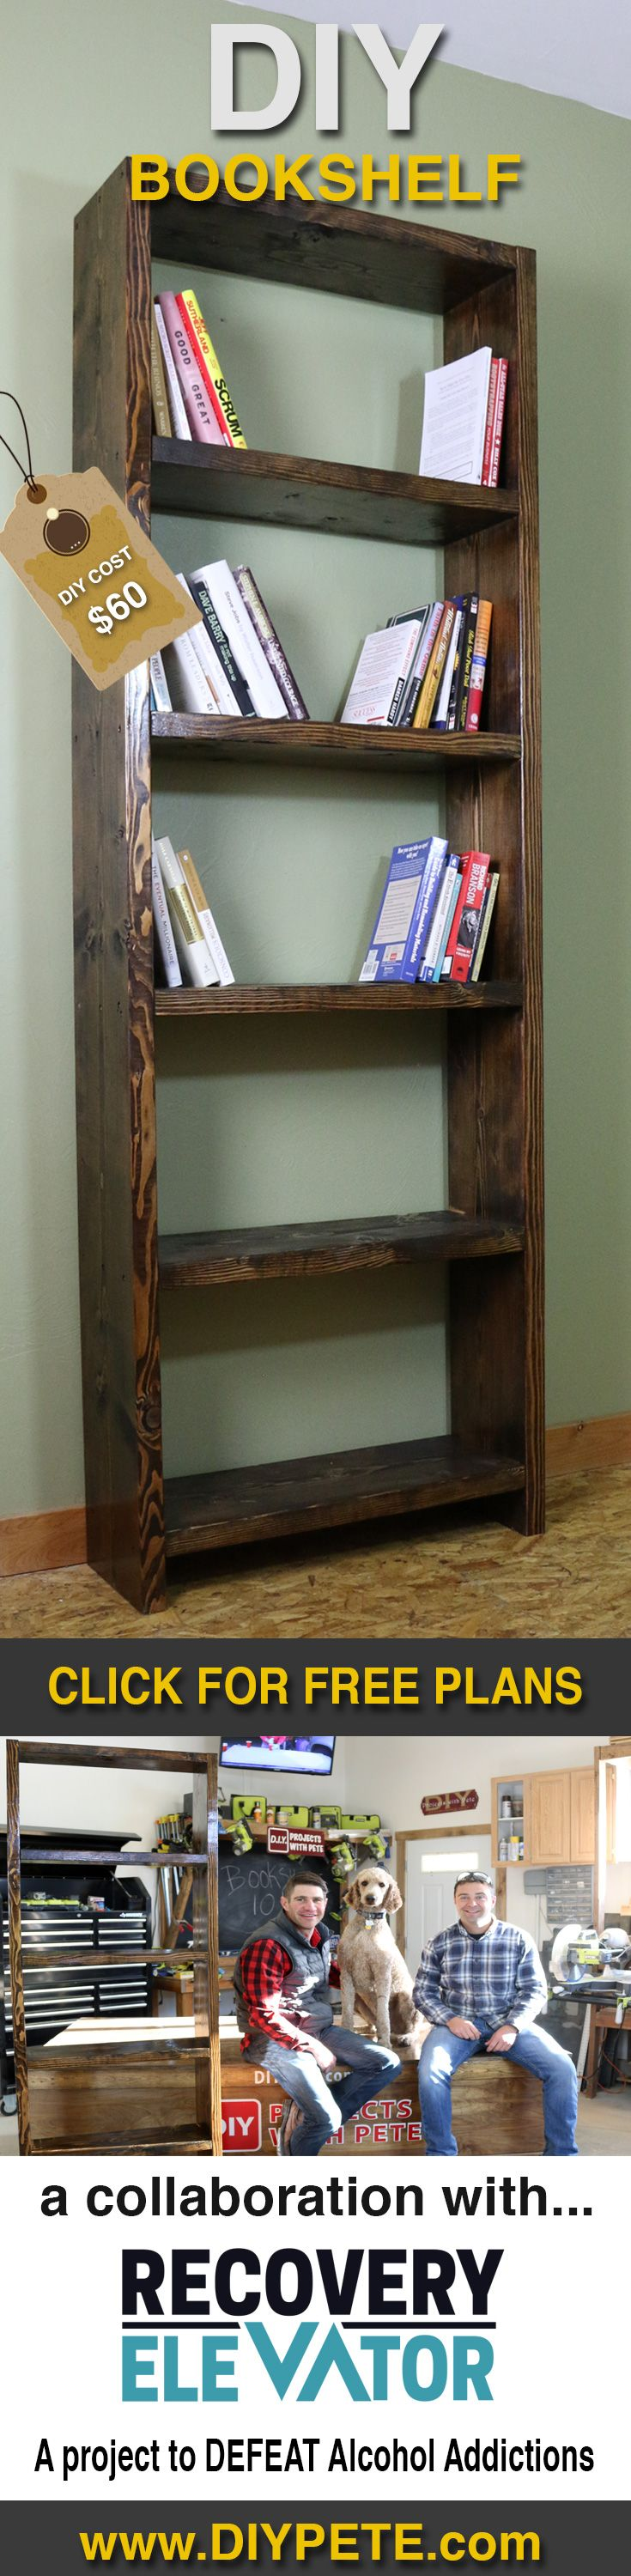 a simple diy bookshelf and how hobbies have a positive impact on people